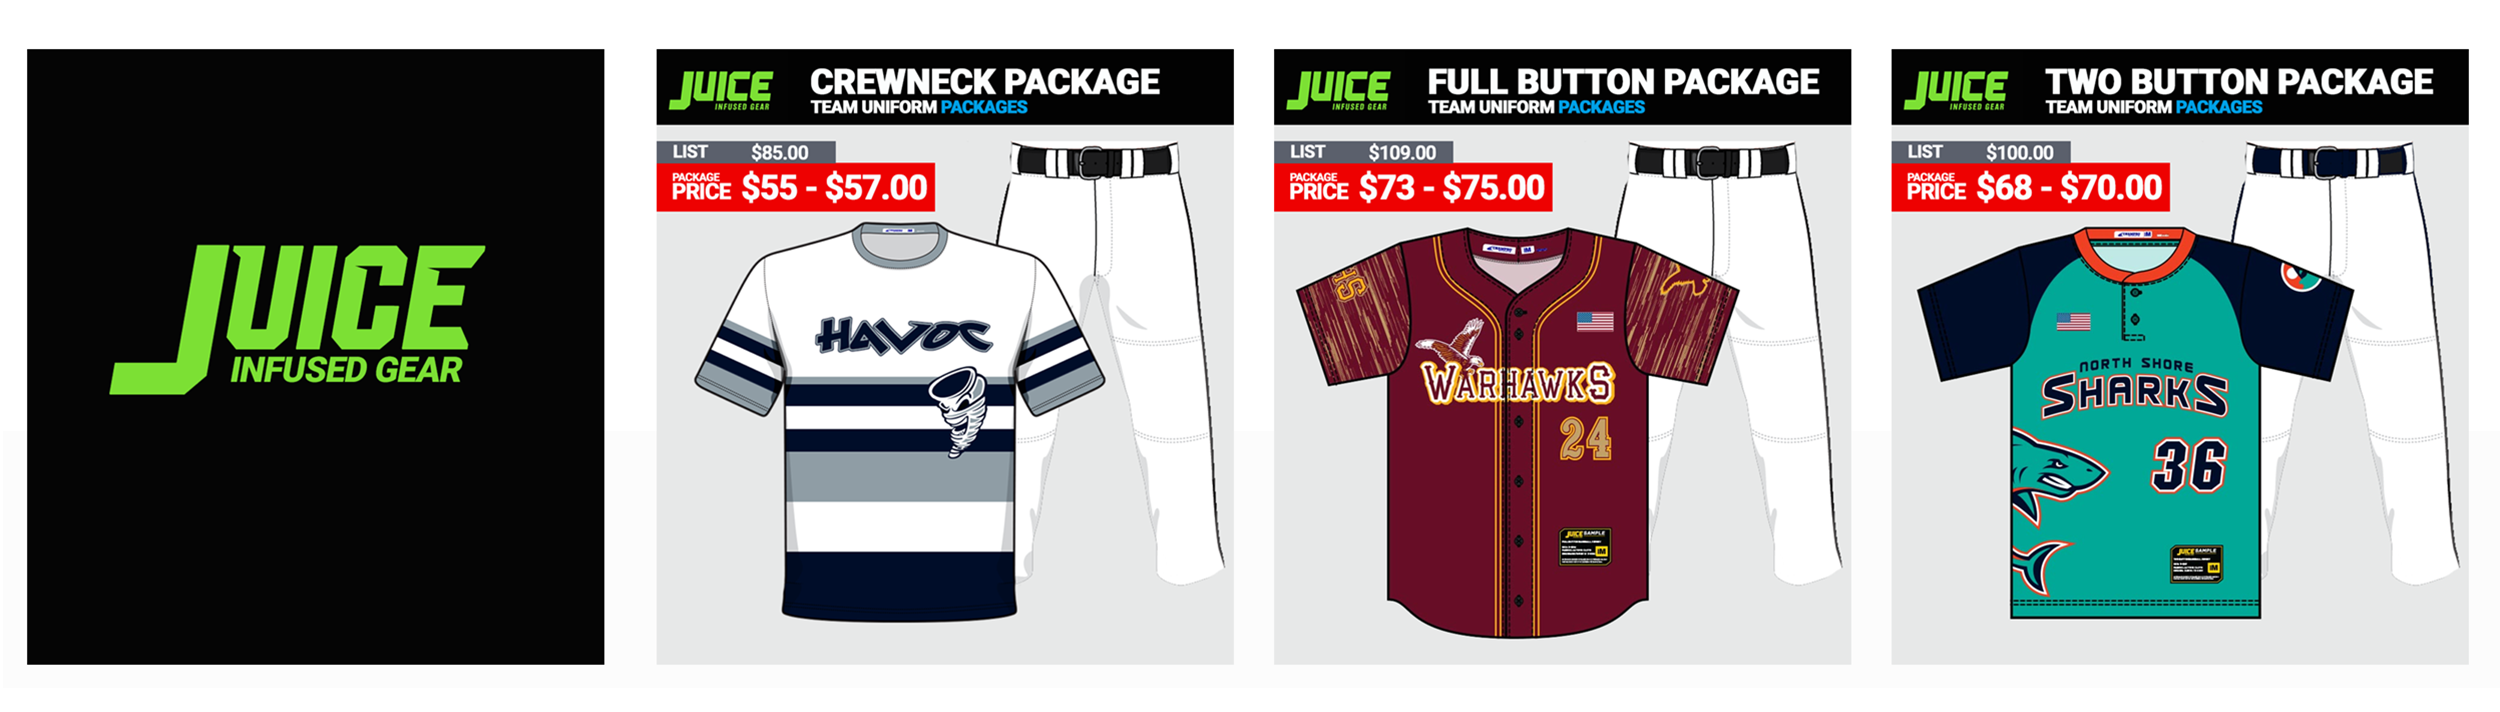 Champro Juice Baseball Uniform Packages